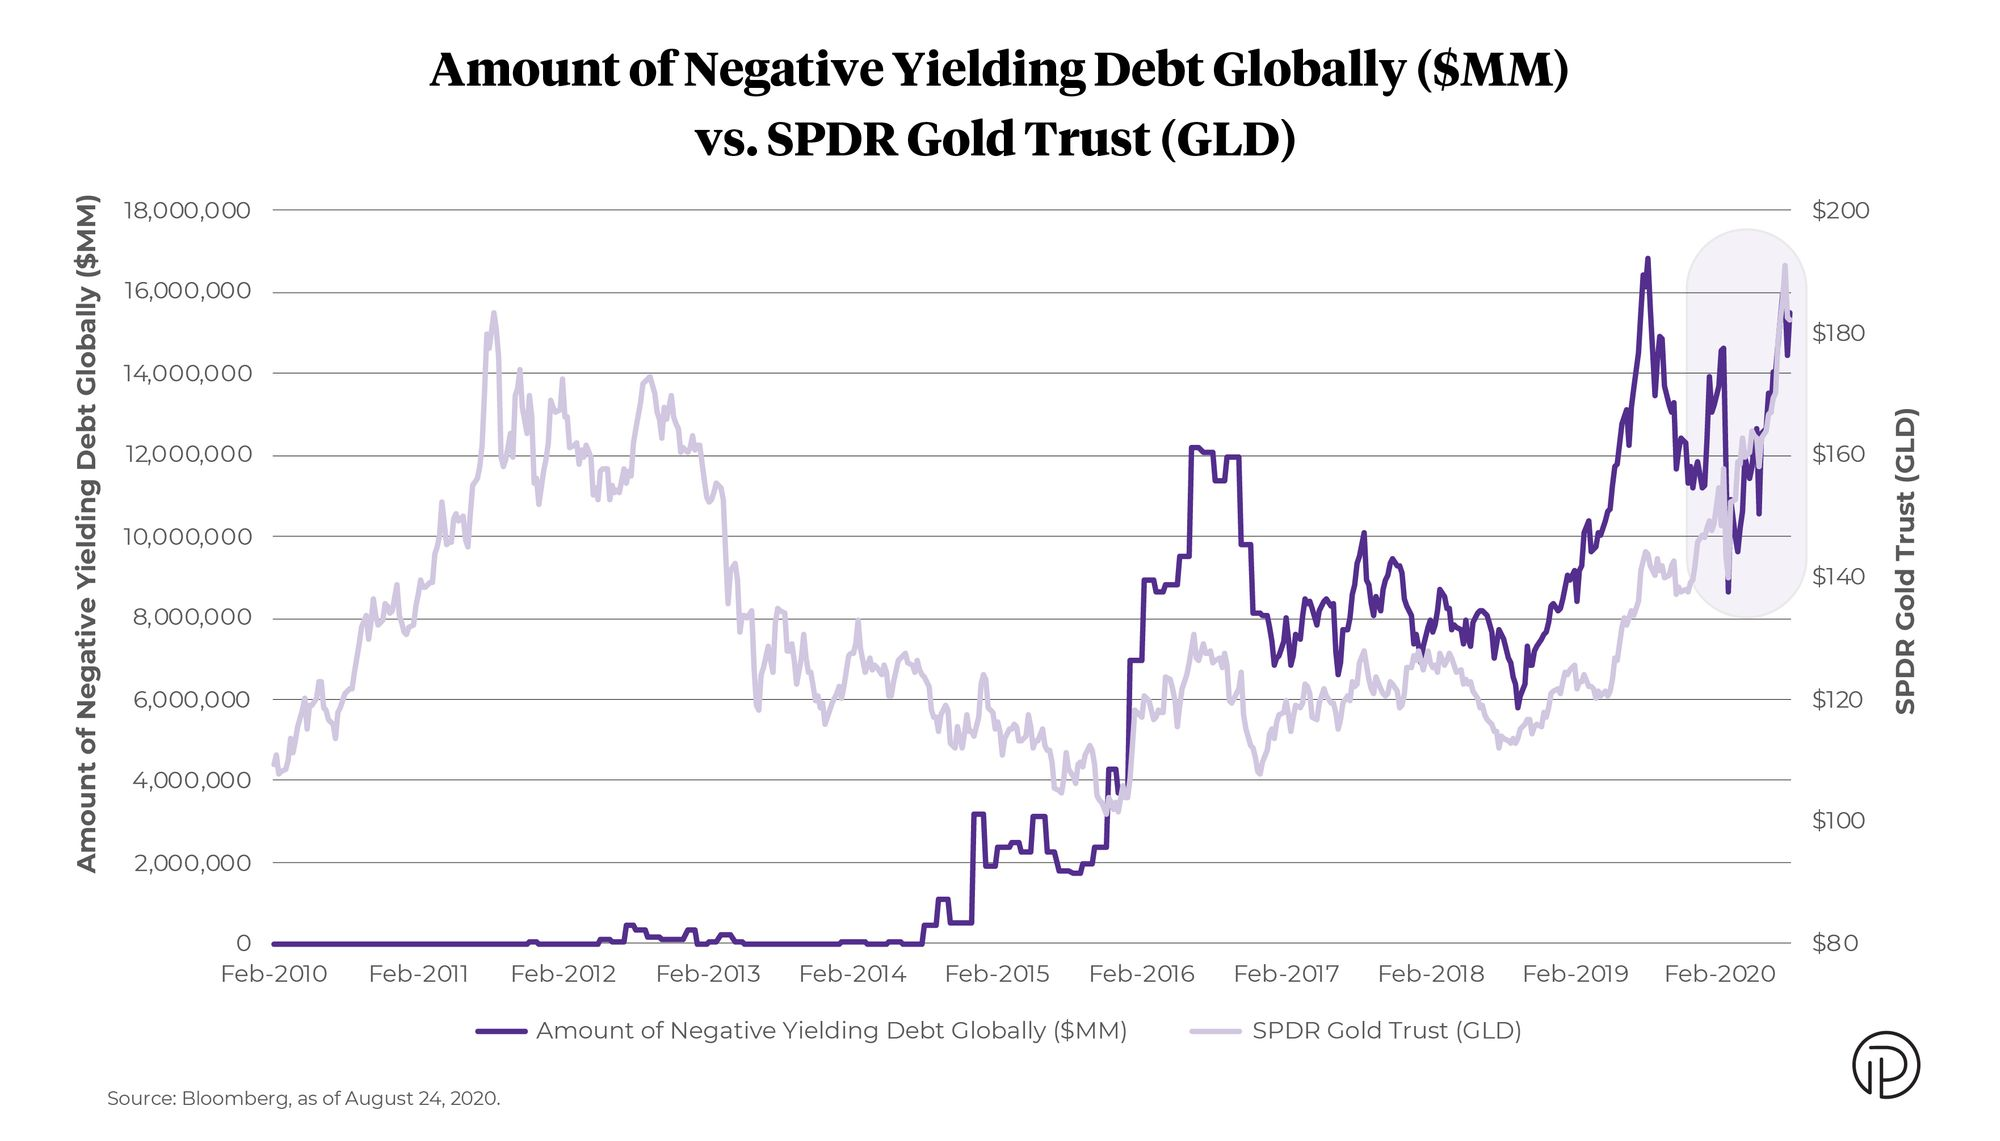 Amount of Negative Yielding Debt Globally versus SPDR Gold Trust GLD